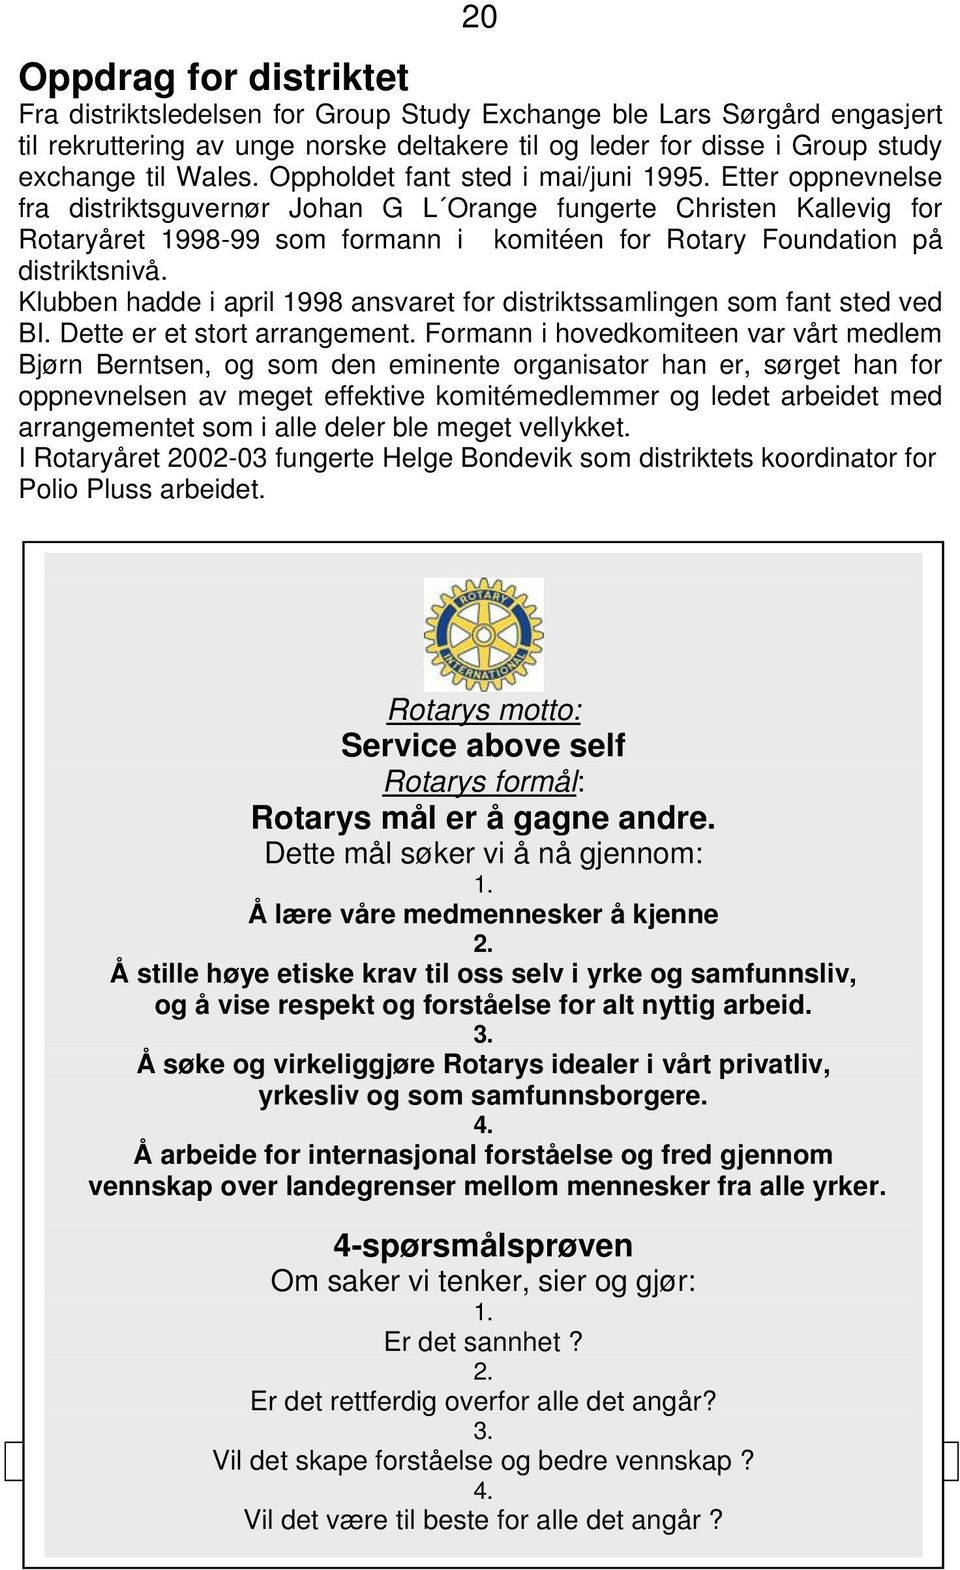 Etter oppnevnelse fra distriktsguvernør Johan G L Orange fungerte Christen Kallevig for Rotaryåret 1998-99 som formann i komitéen for Rotary Foundation på distriktsnivå.